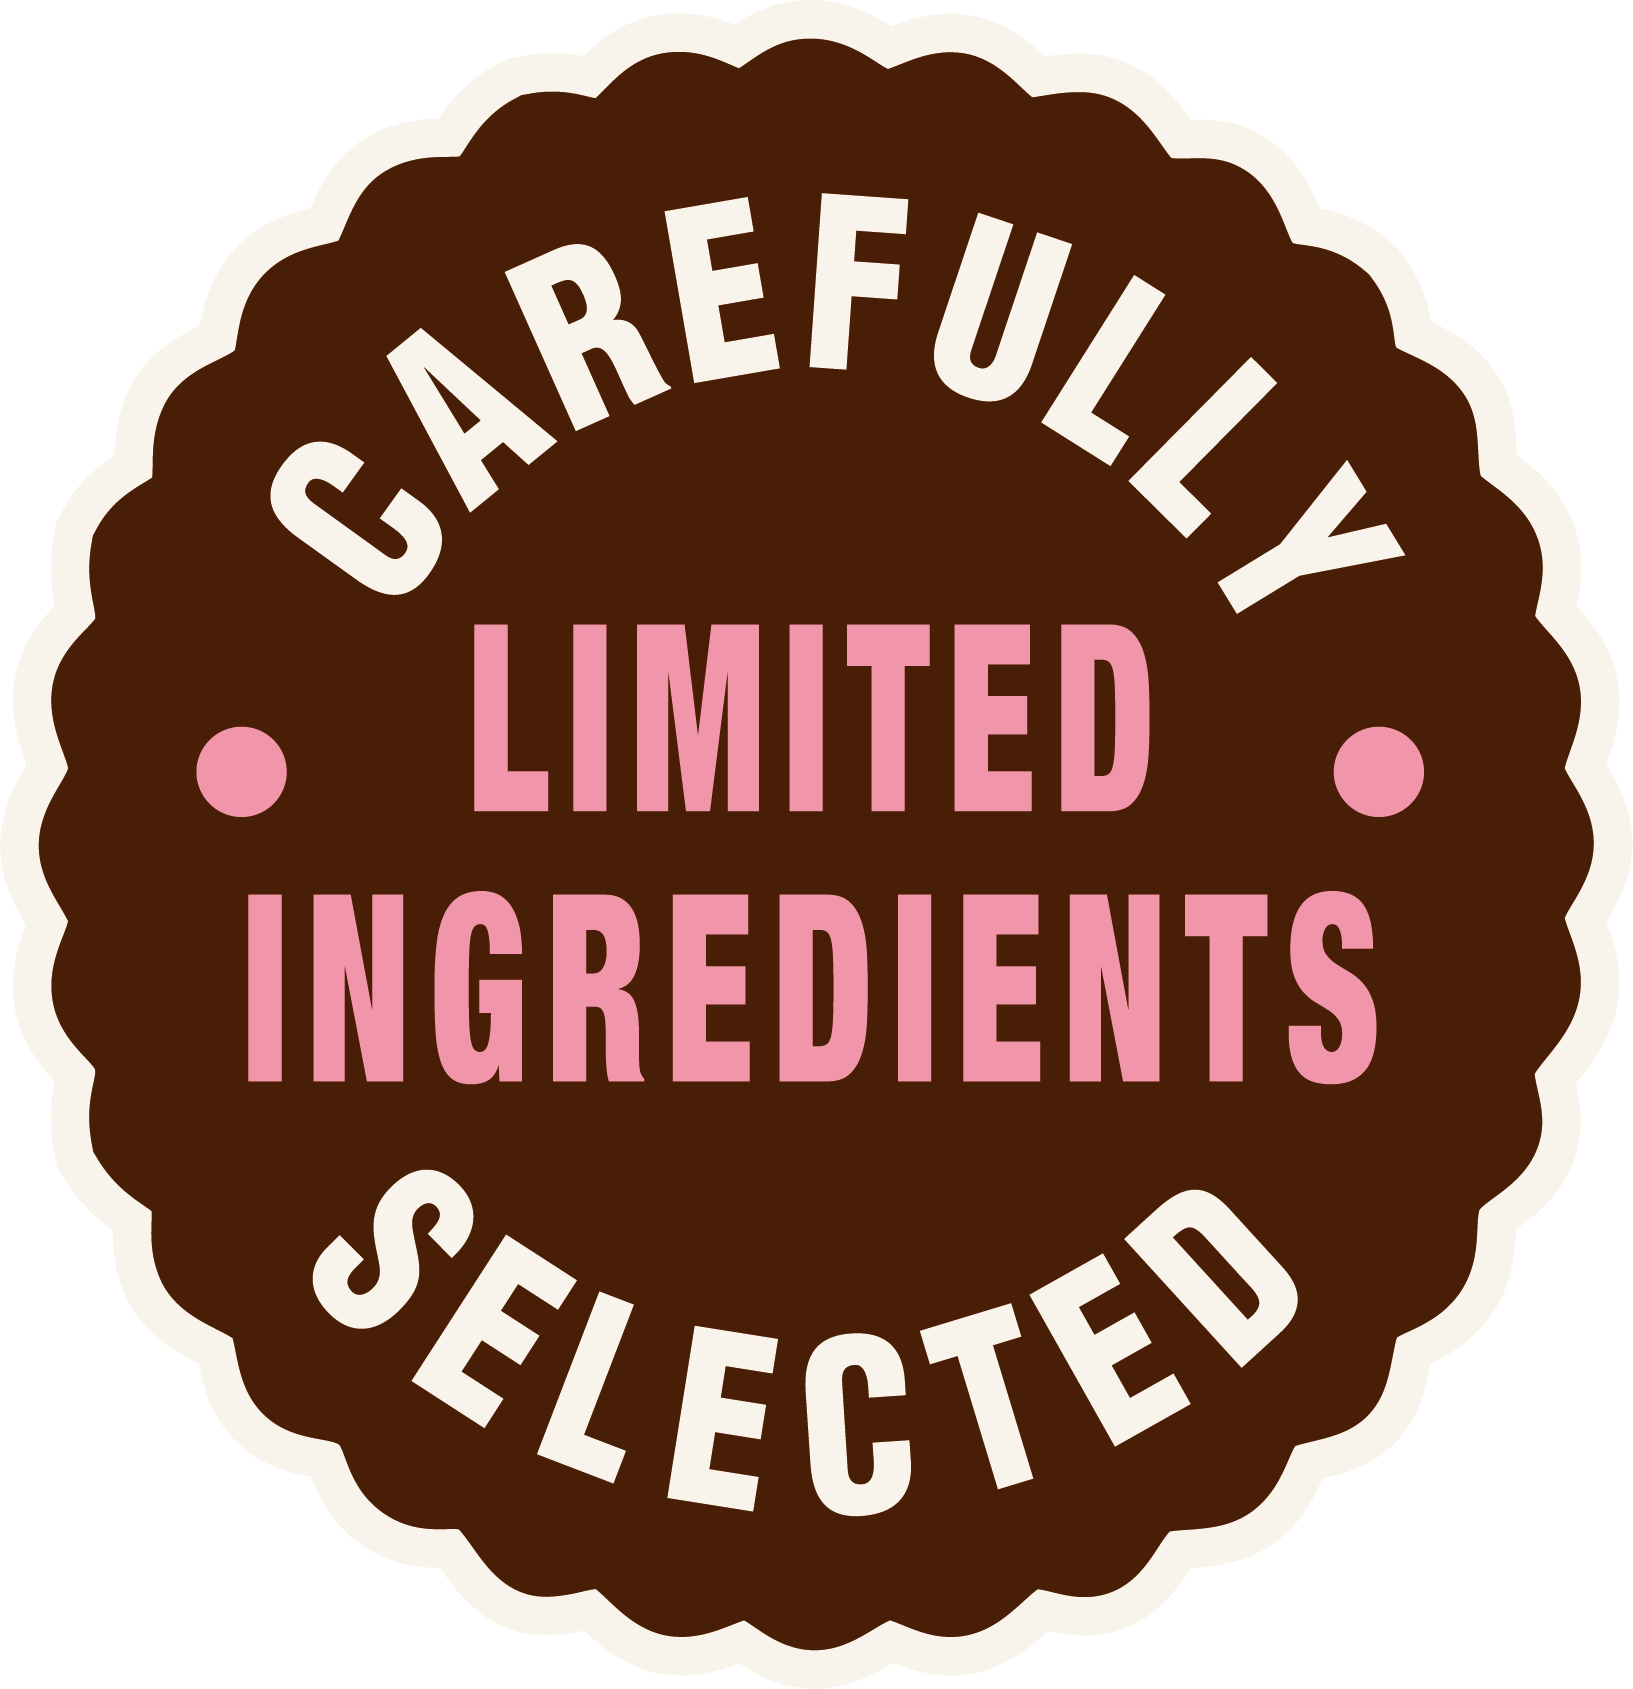 Carefully selected limited ingredients